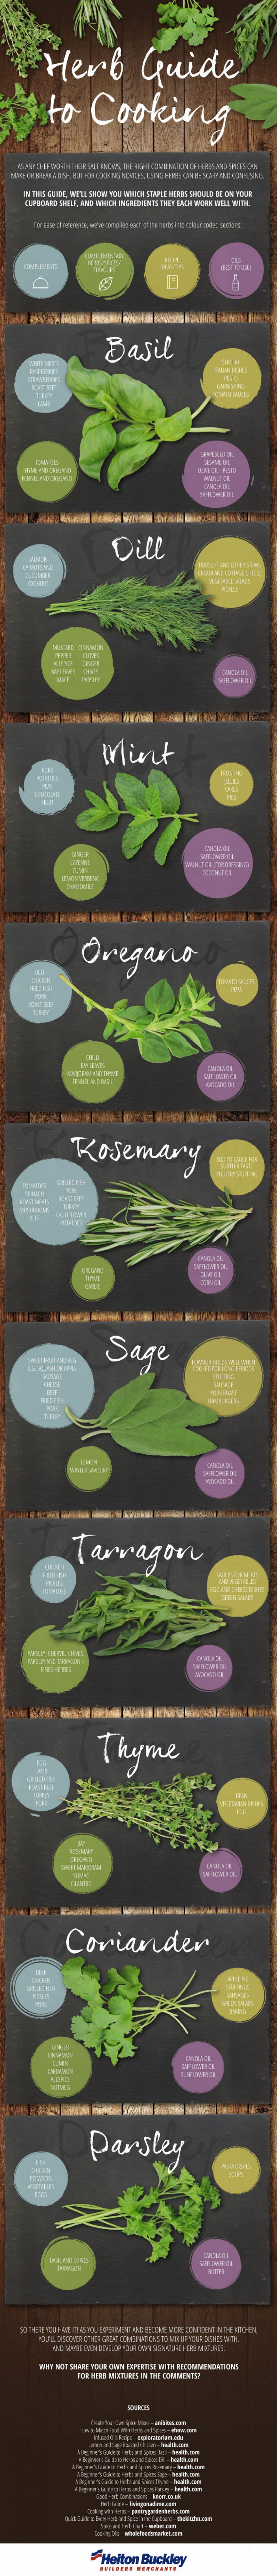 Herb Guide Cooking Infographic